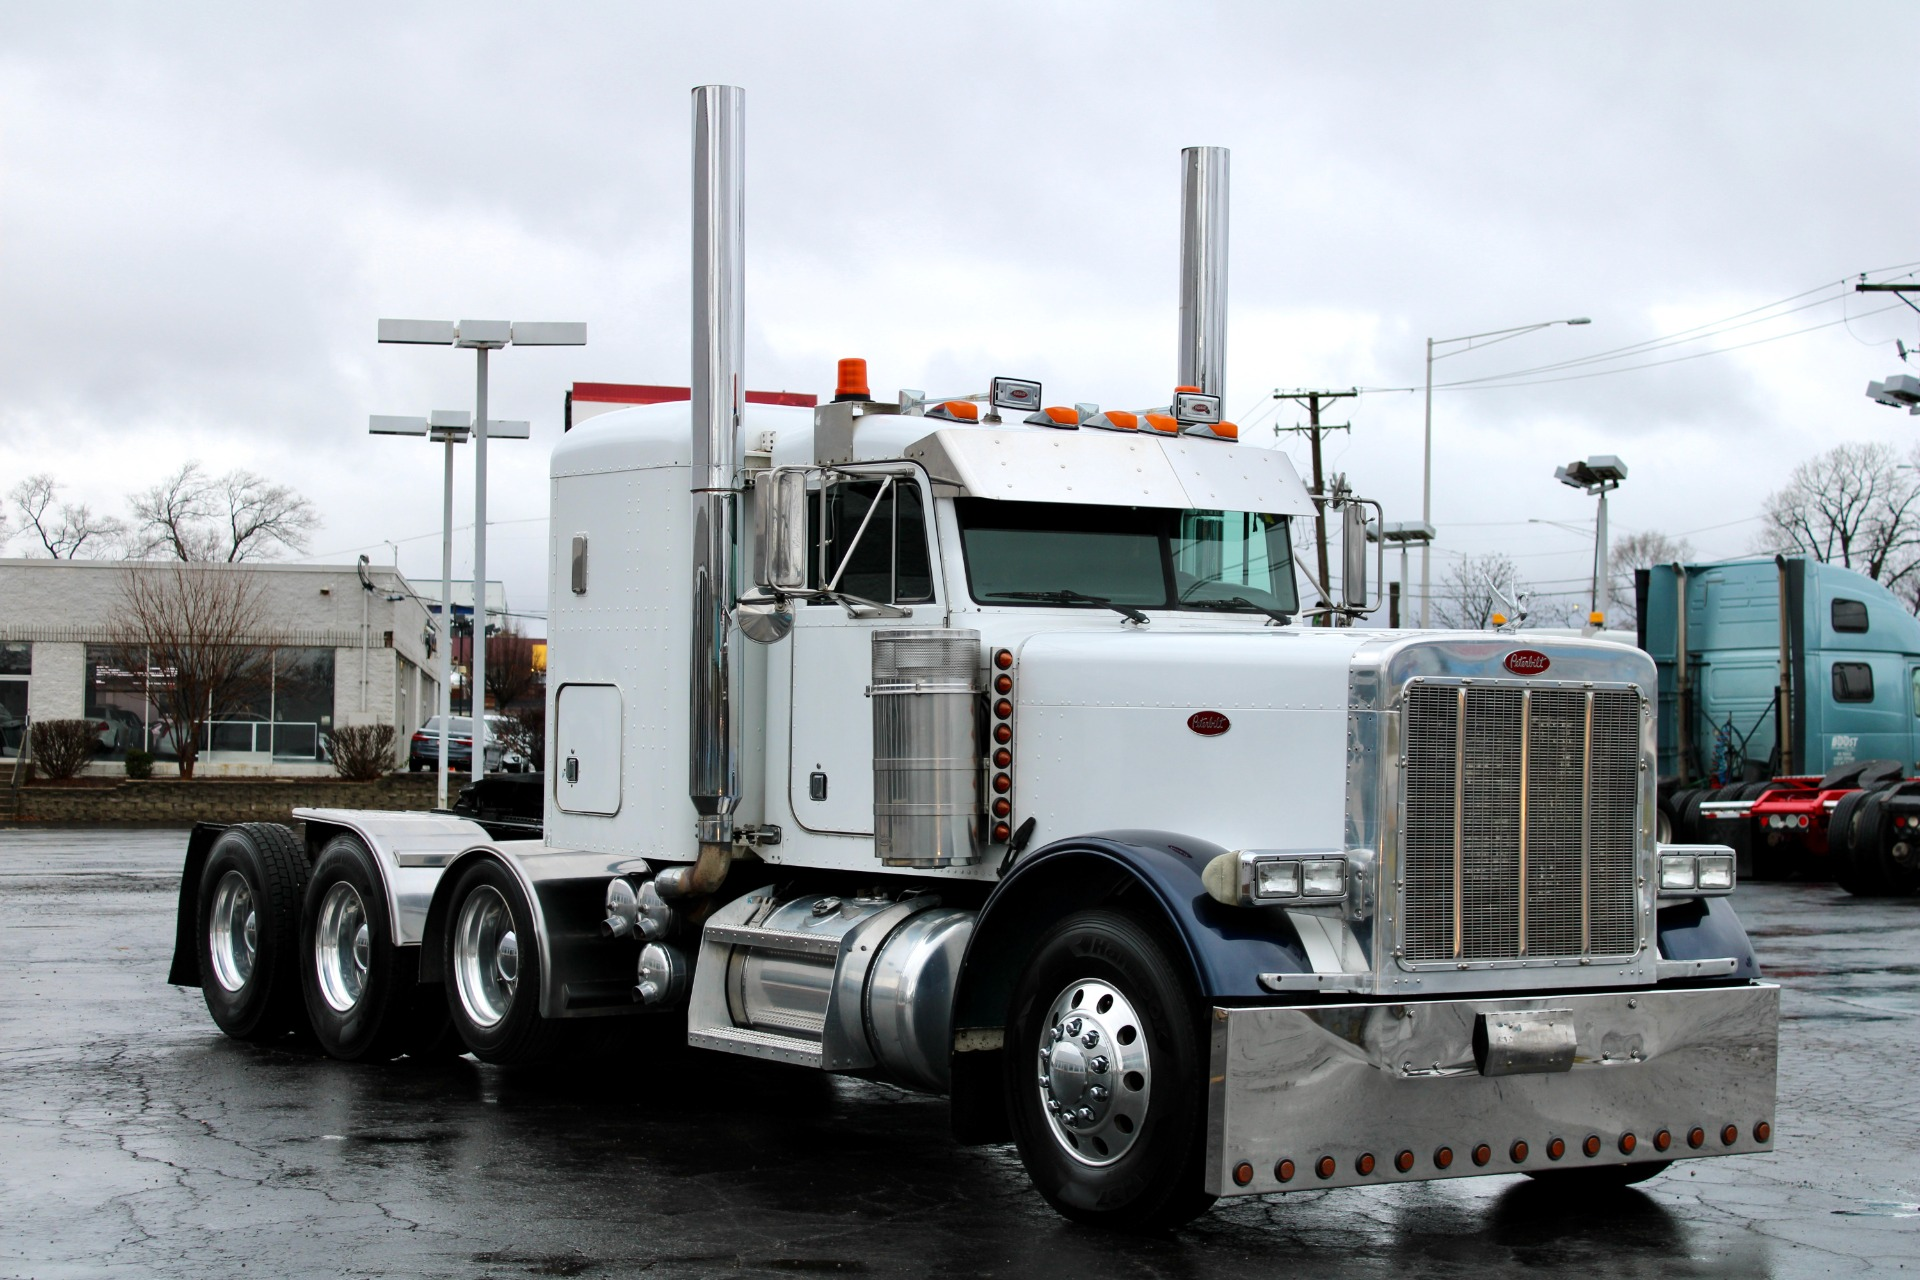 Used-2002-Peterbilt-379-Tri-Axle-with-Lift-CAT-C15-6NZ-550-HP-Double-Wet-Kit